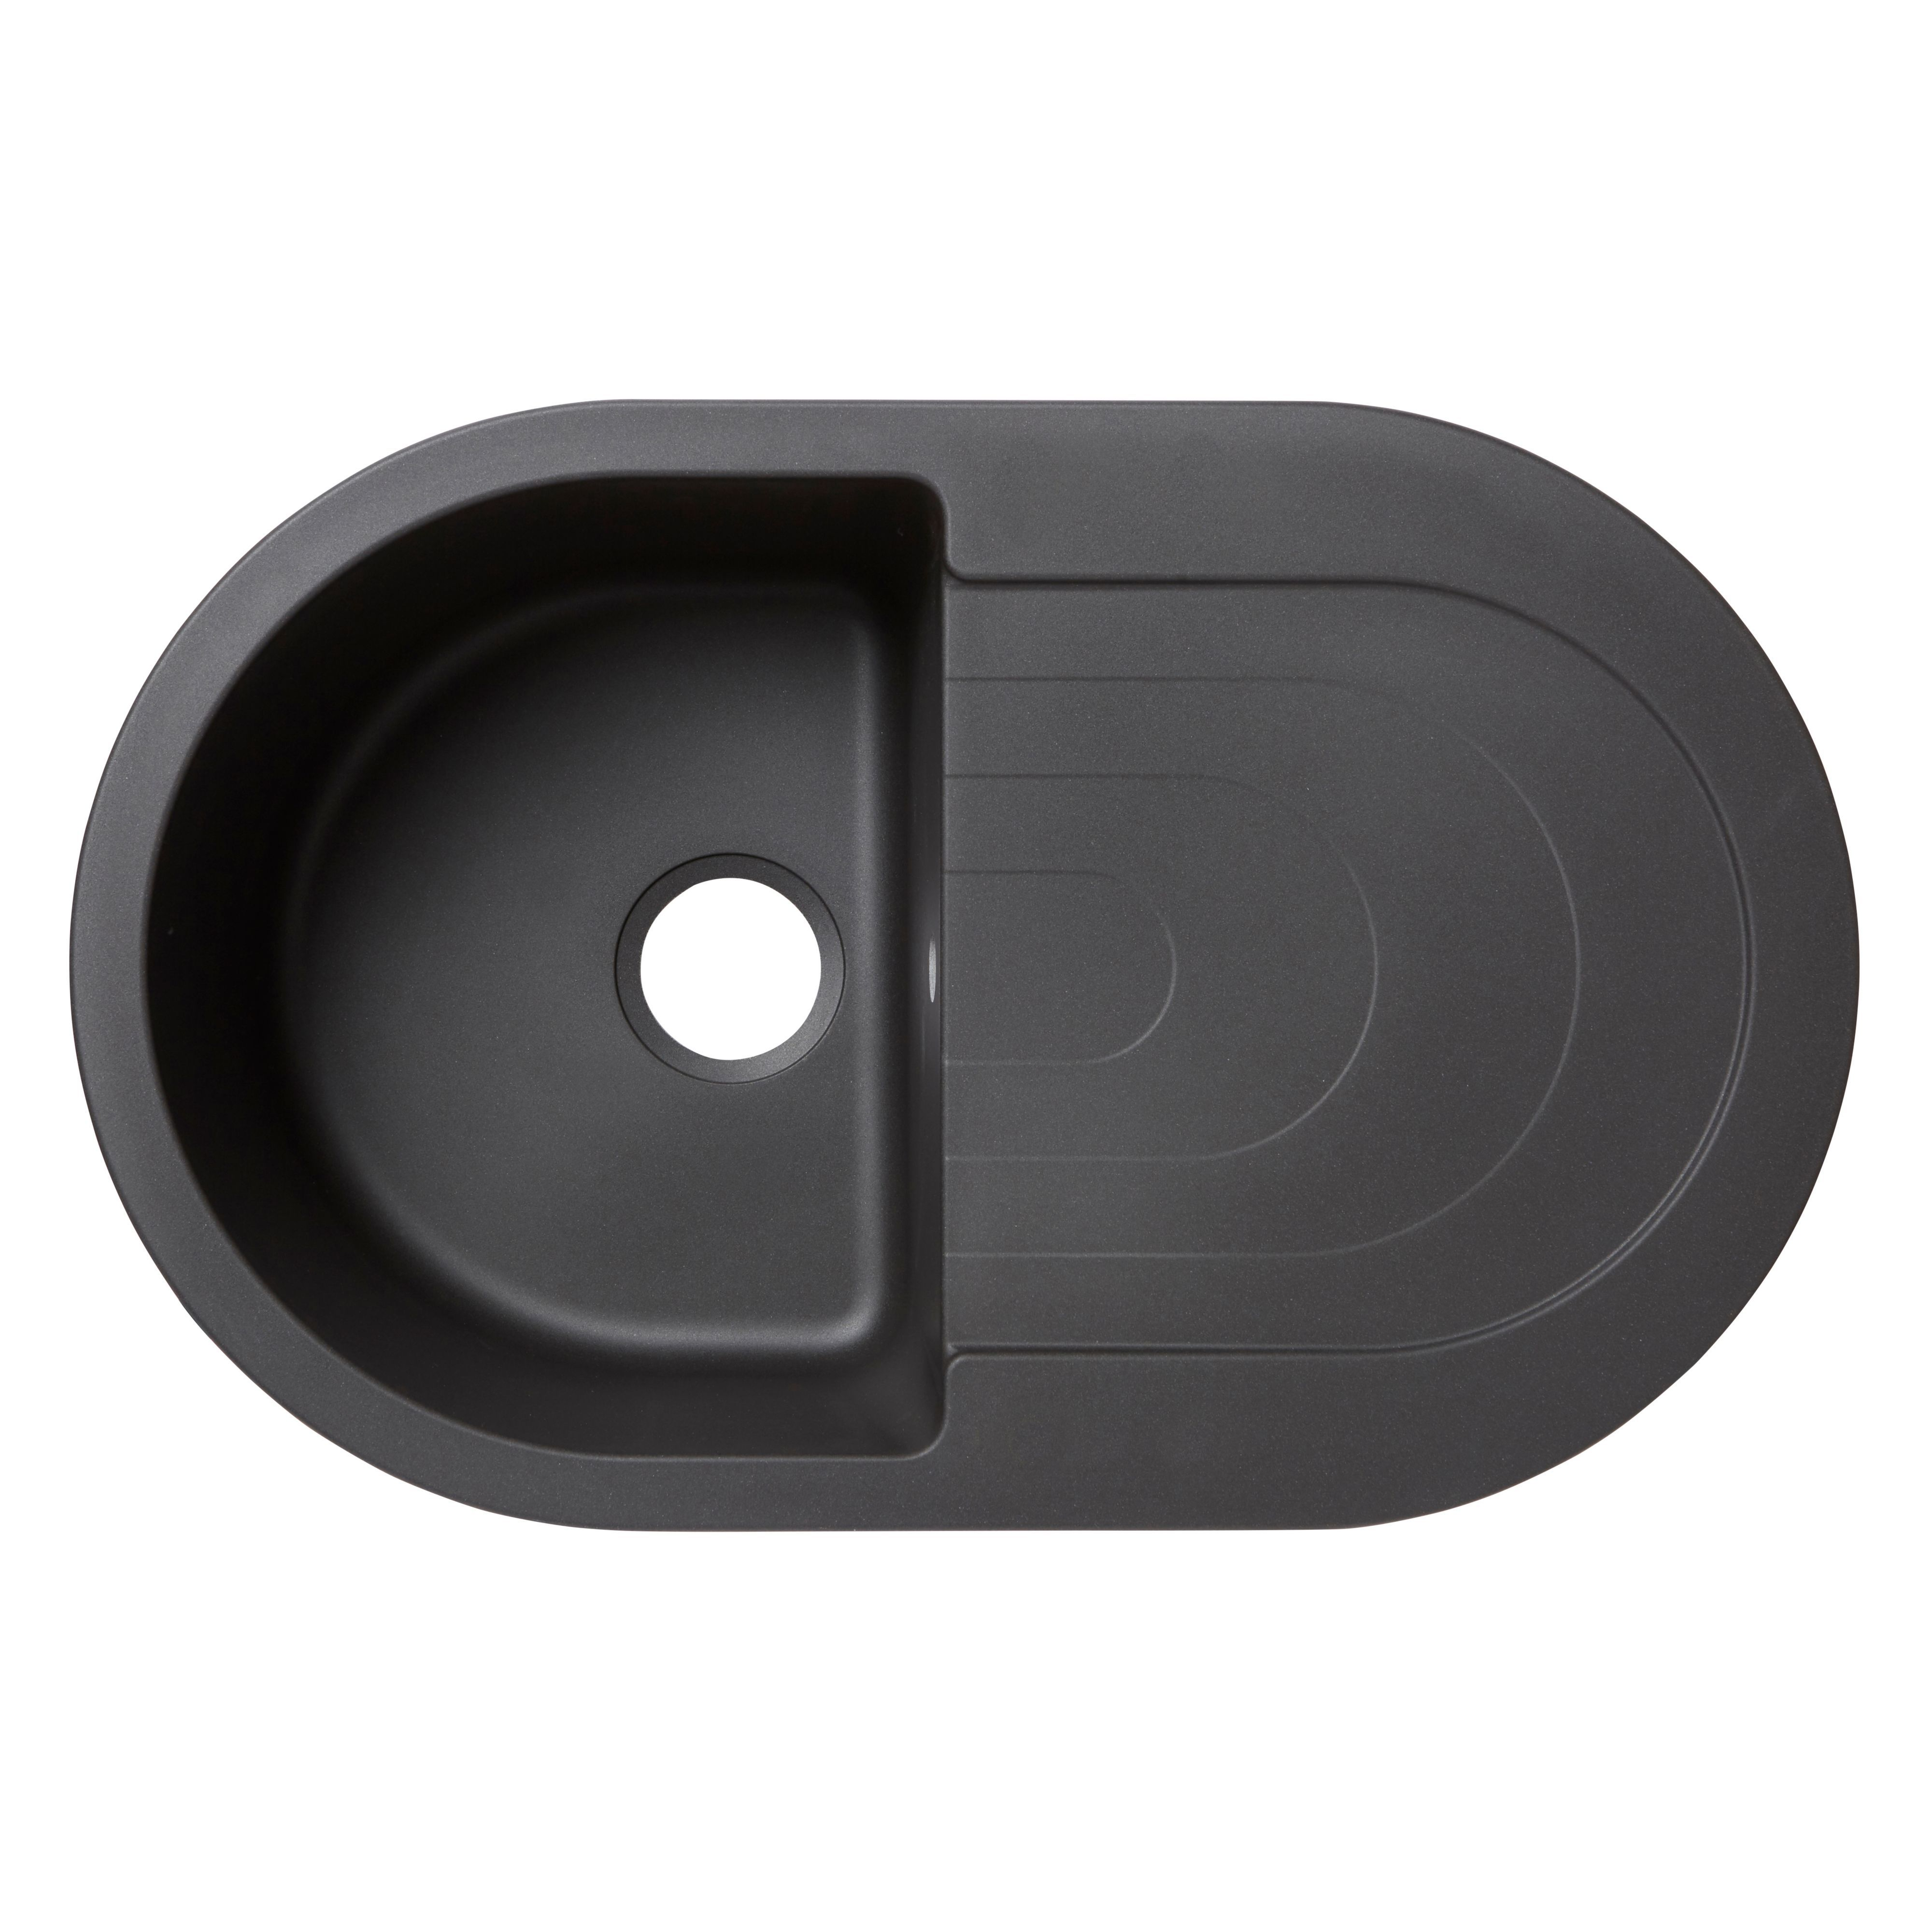 Cooke And Lewis Kitchen Sinks Diy at bq cooke lewis agnesi 1 bowl black composite quartz round sink drainer workwithnaturefo